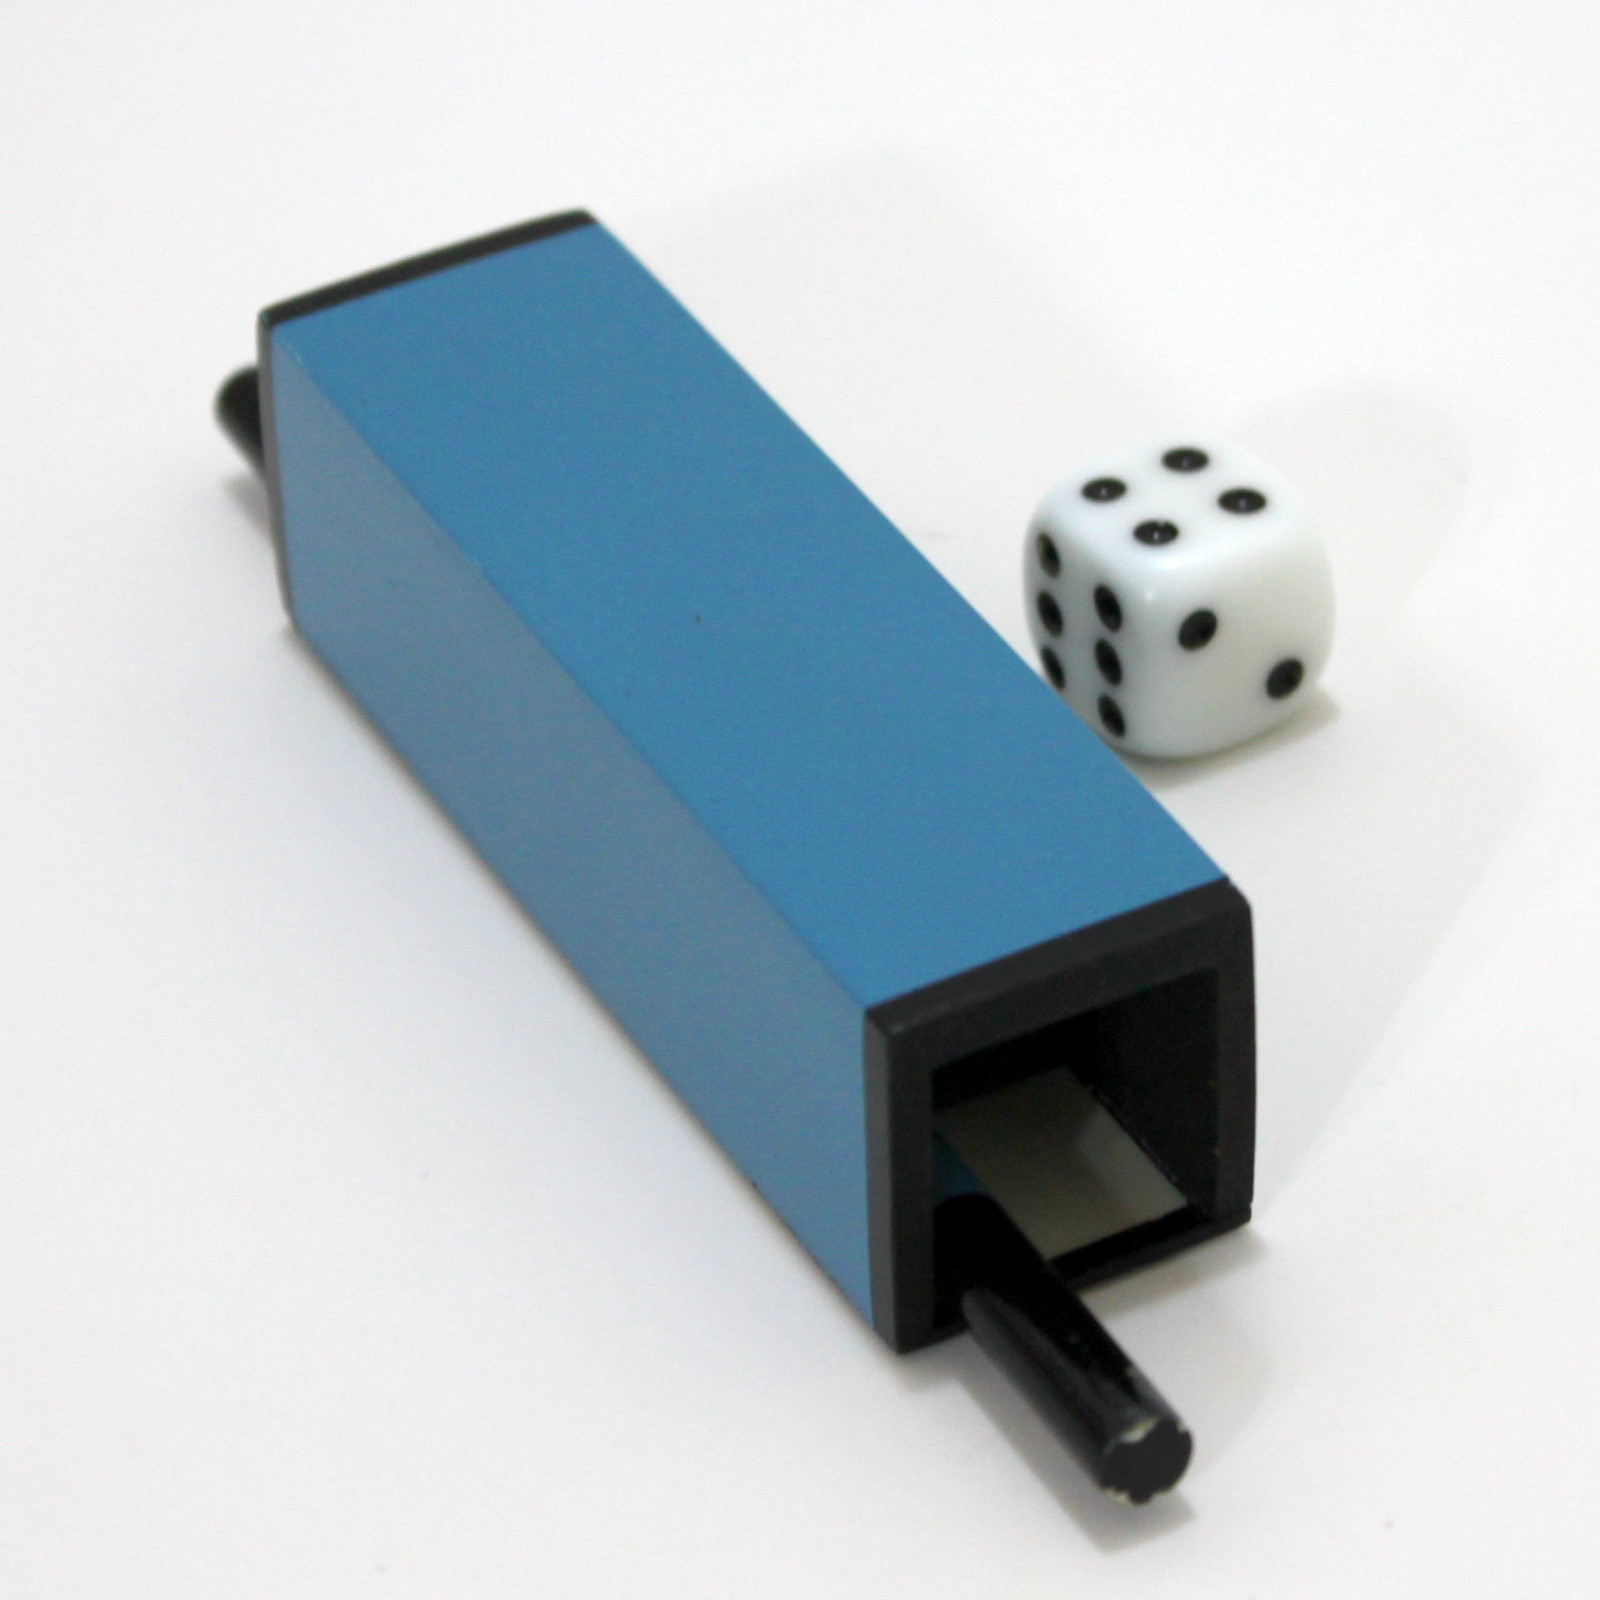 Dice-A-Matic by Alan Warner